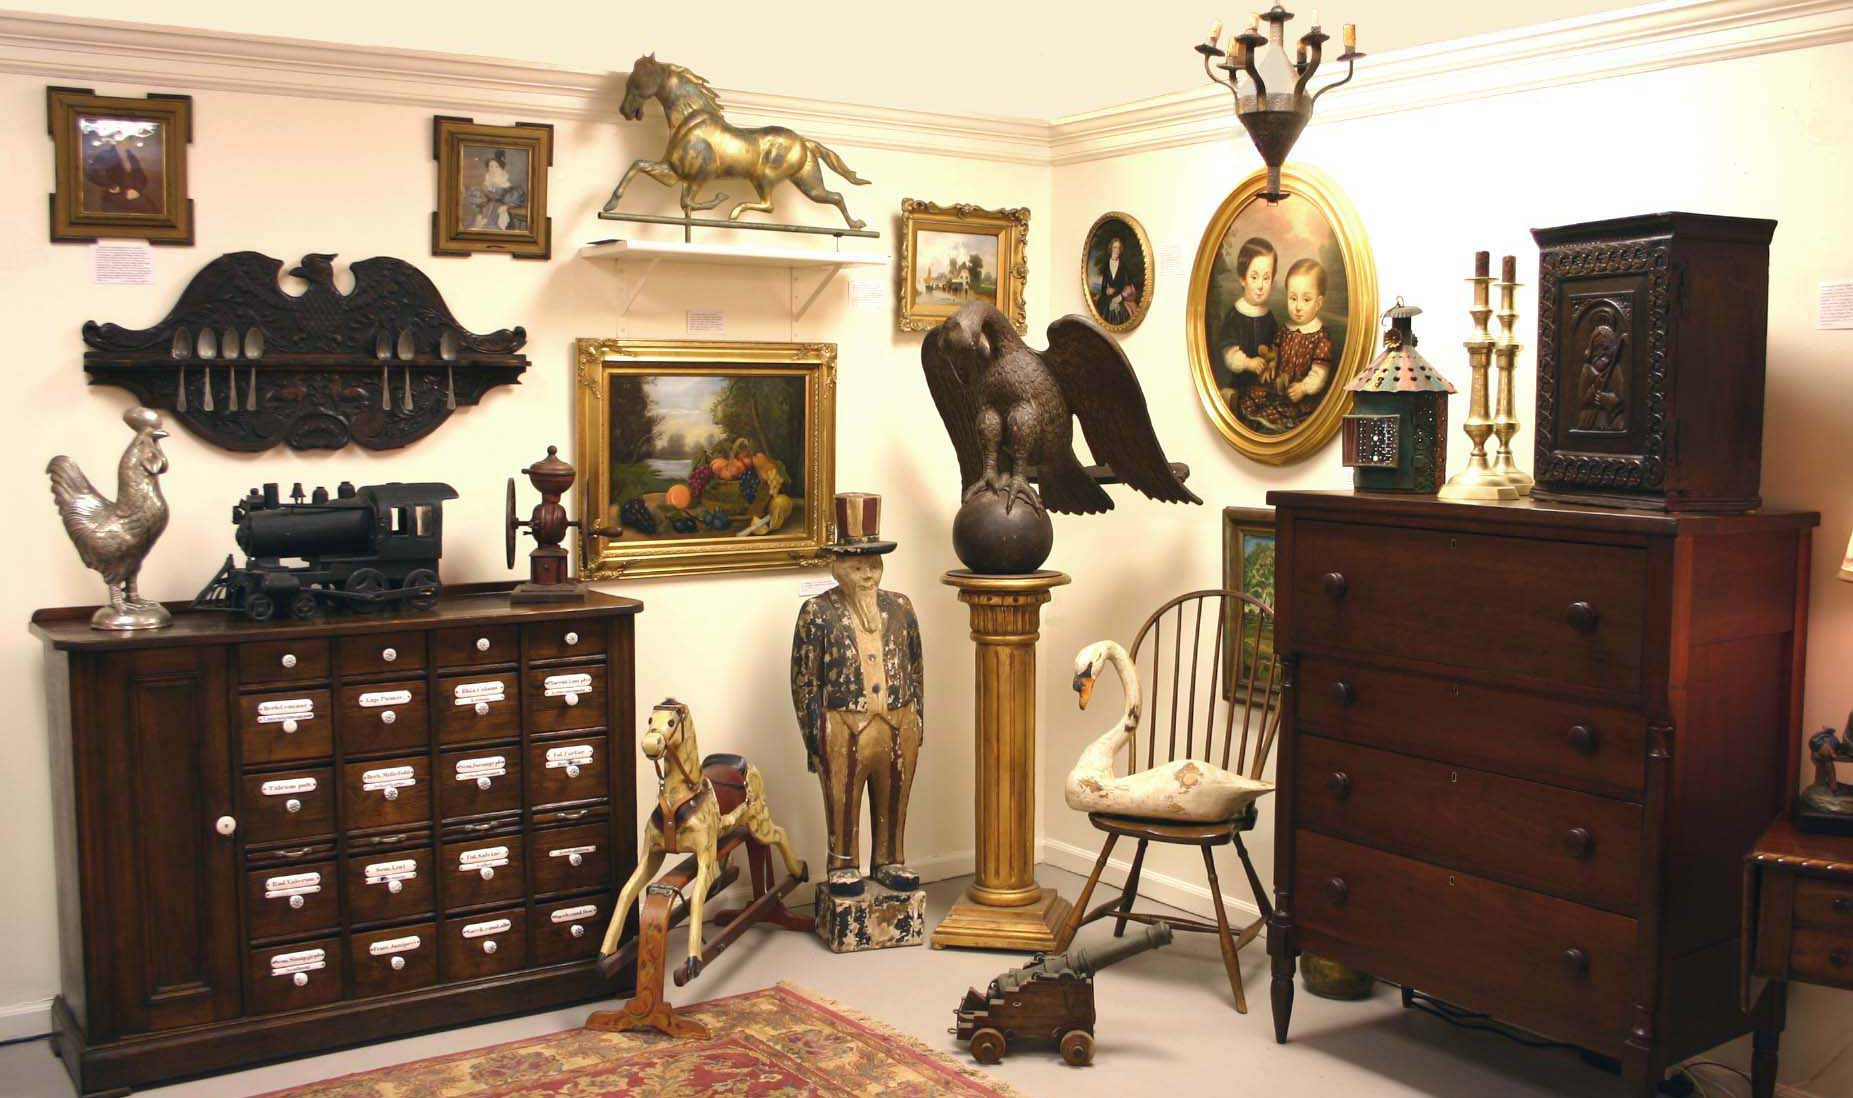 Groovy Best Antique Shops In South Africa Antique King Complete Home Design Collection Papxelindsey Bellcom